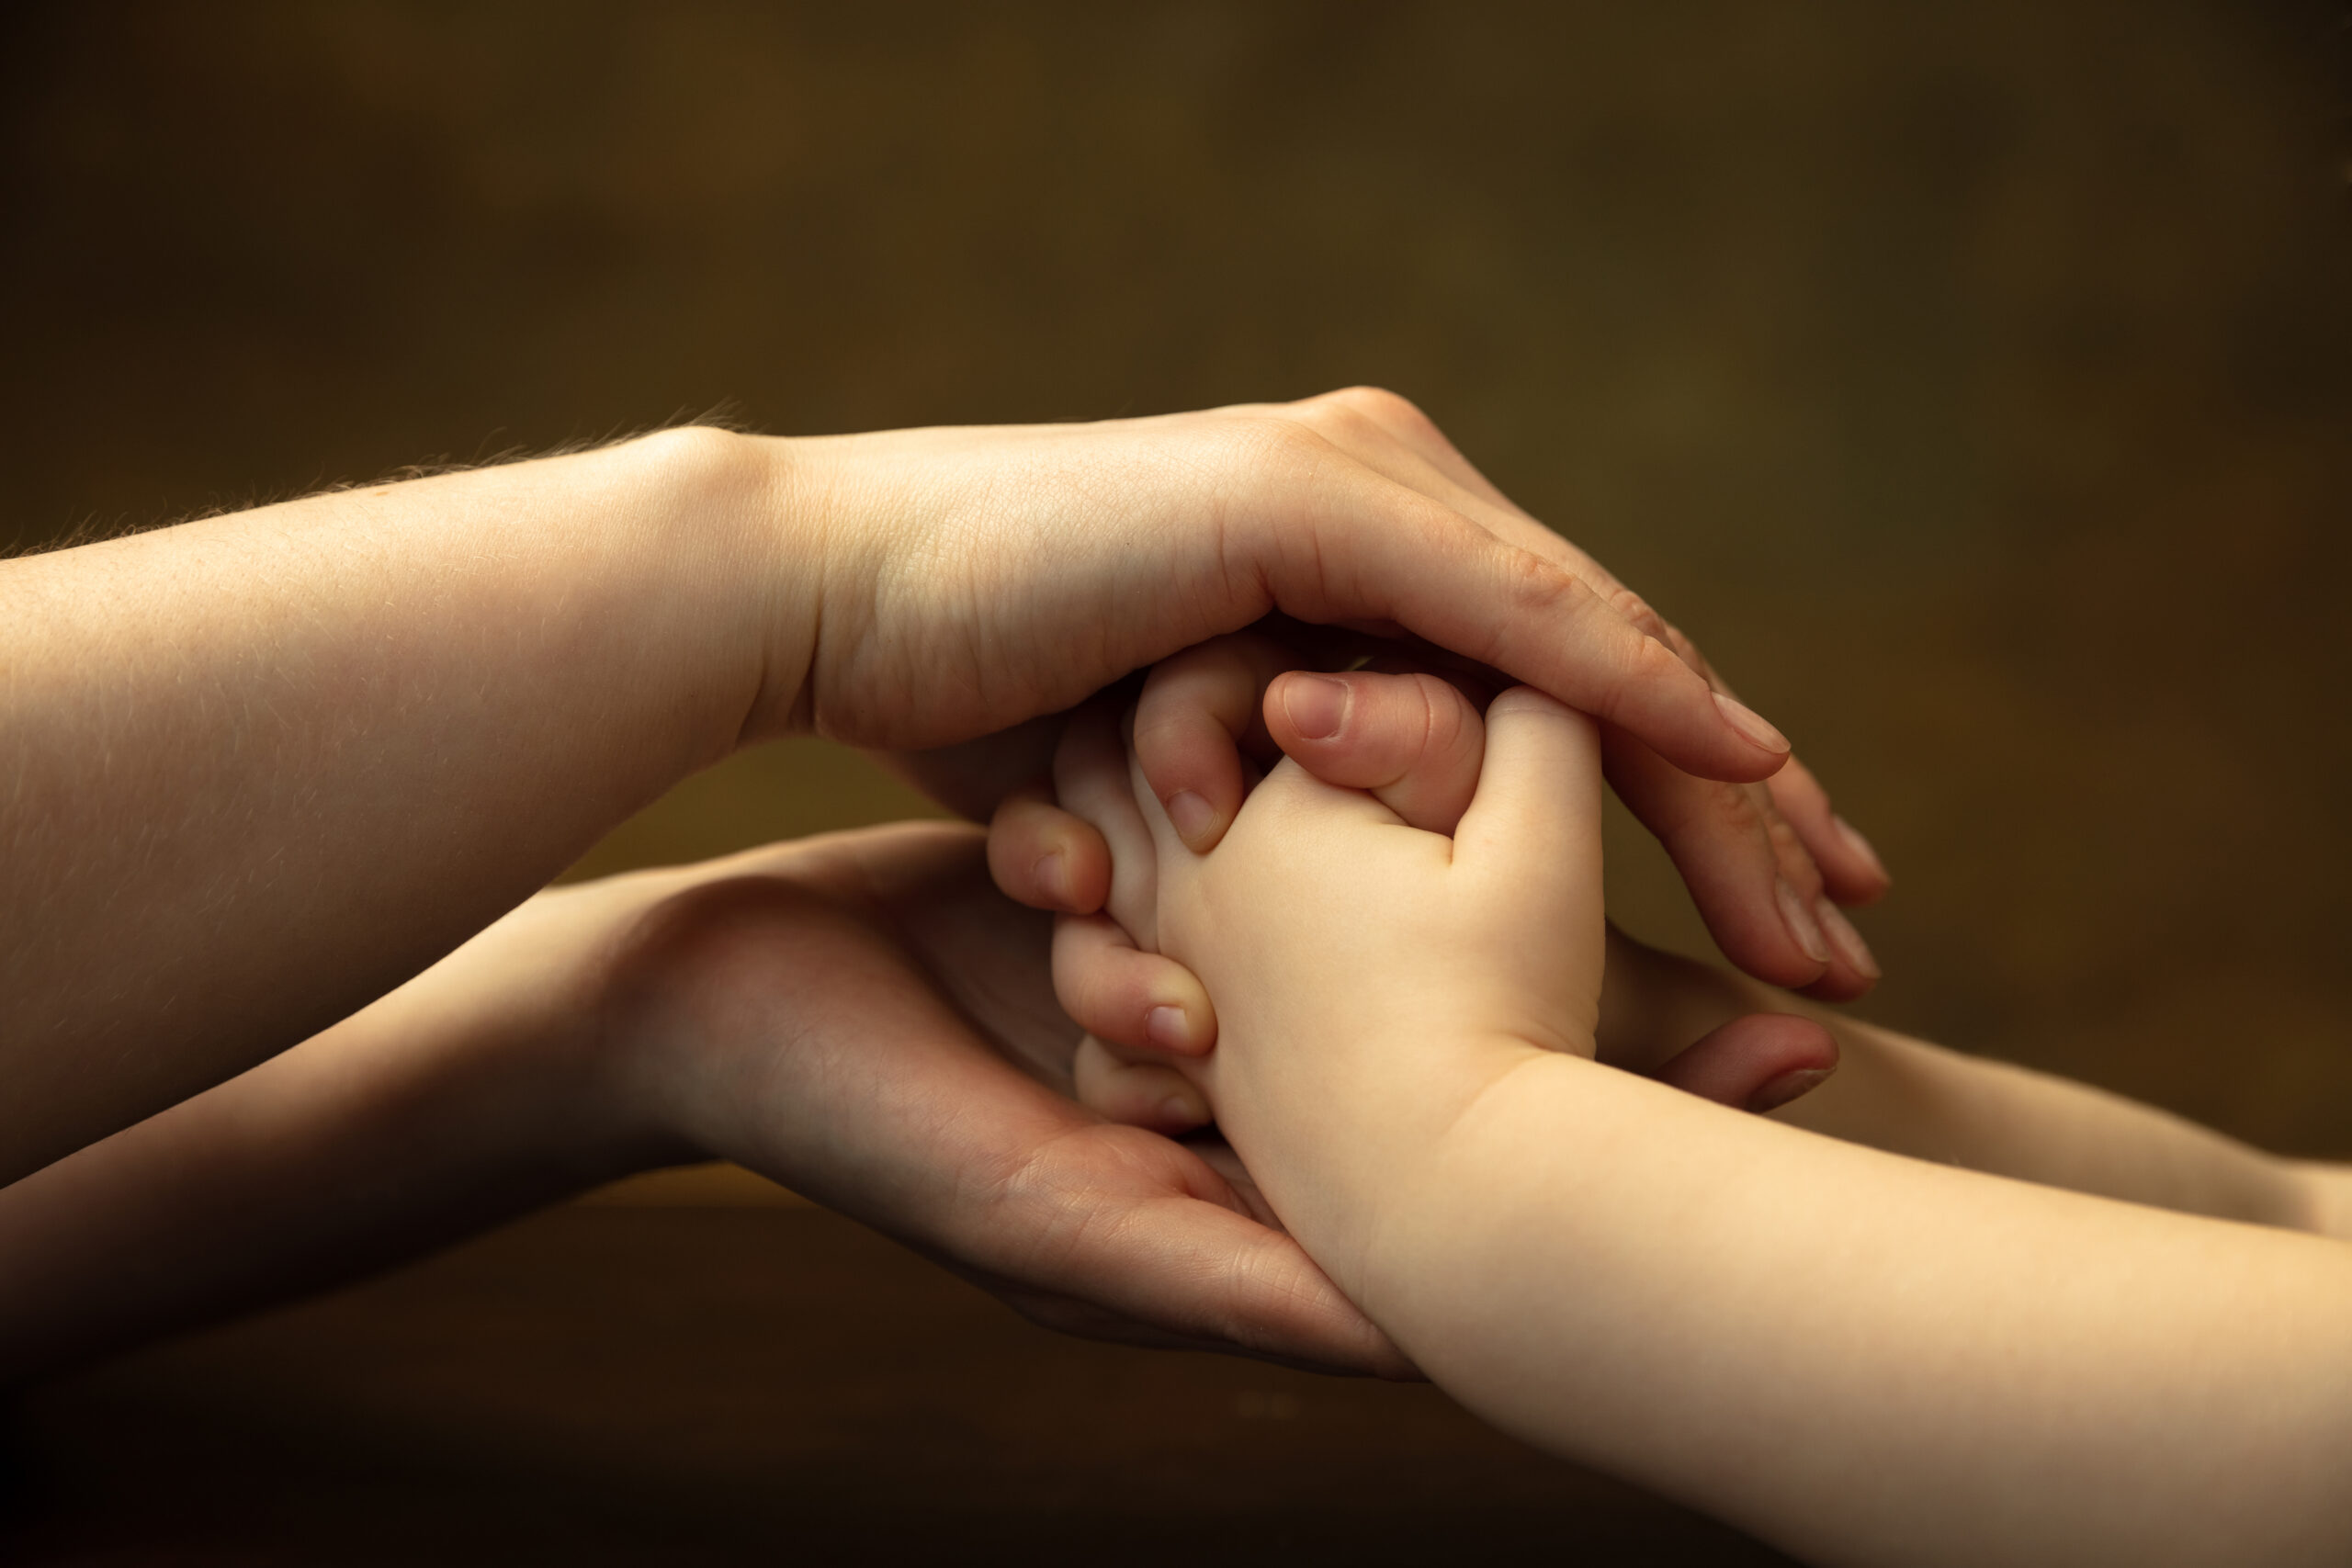 holding hands clapping like friends close up shot female kid s hands doing different things together family home education childhood charity concept mother son daughter wealth